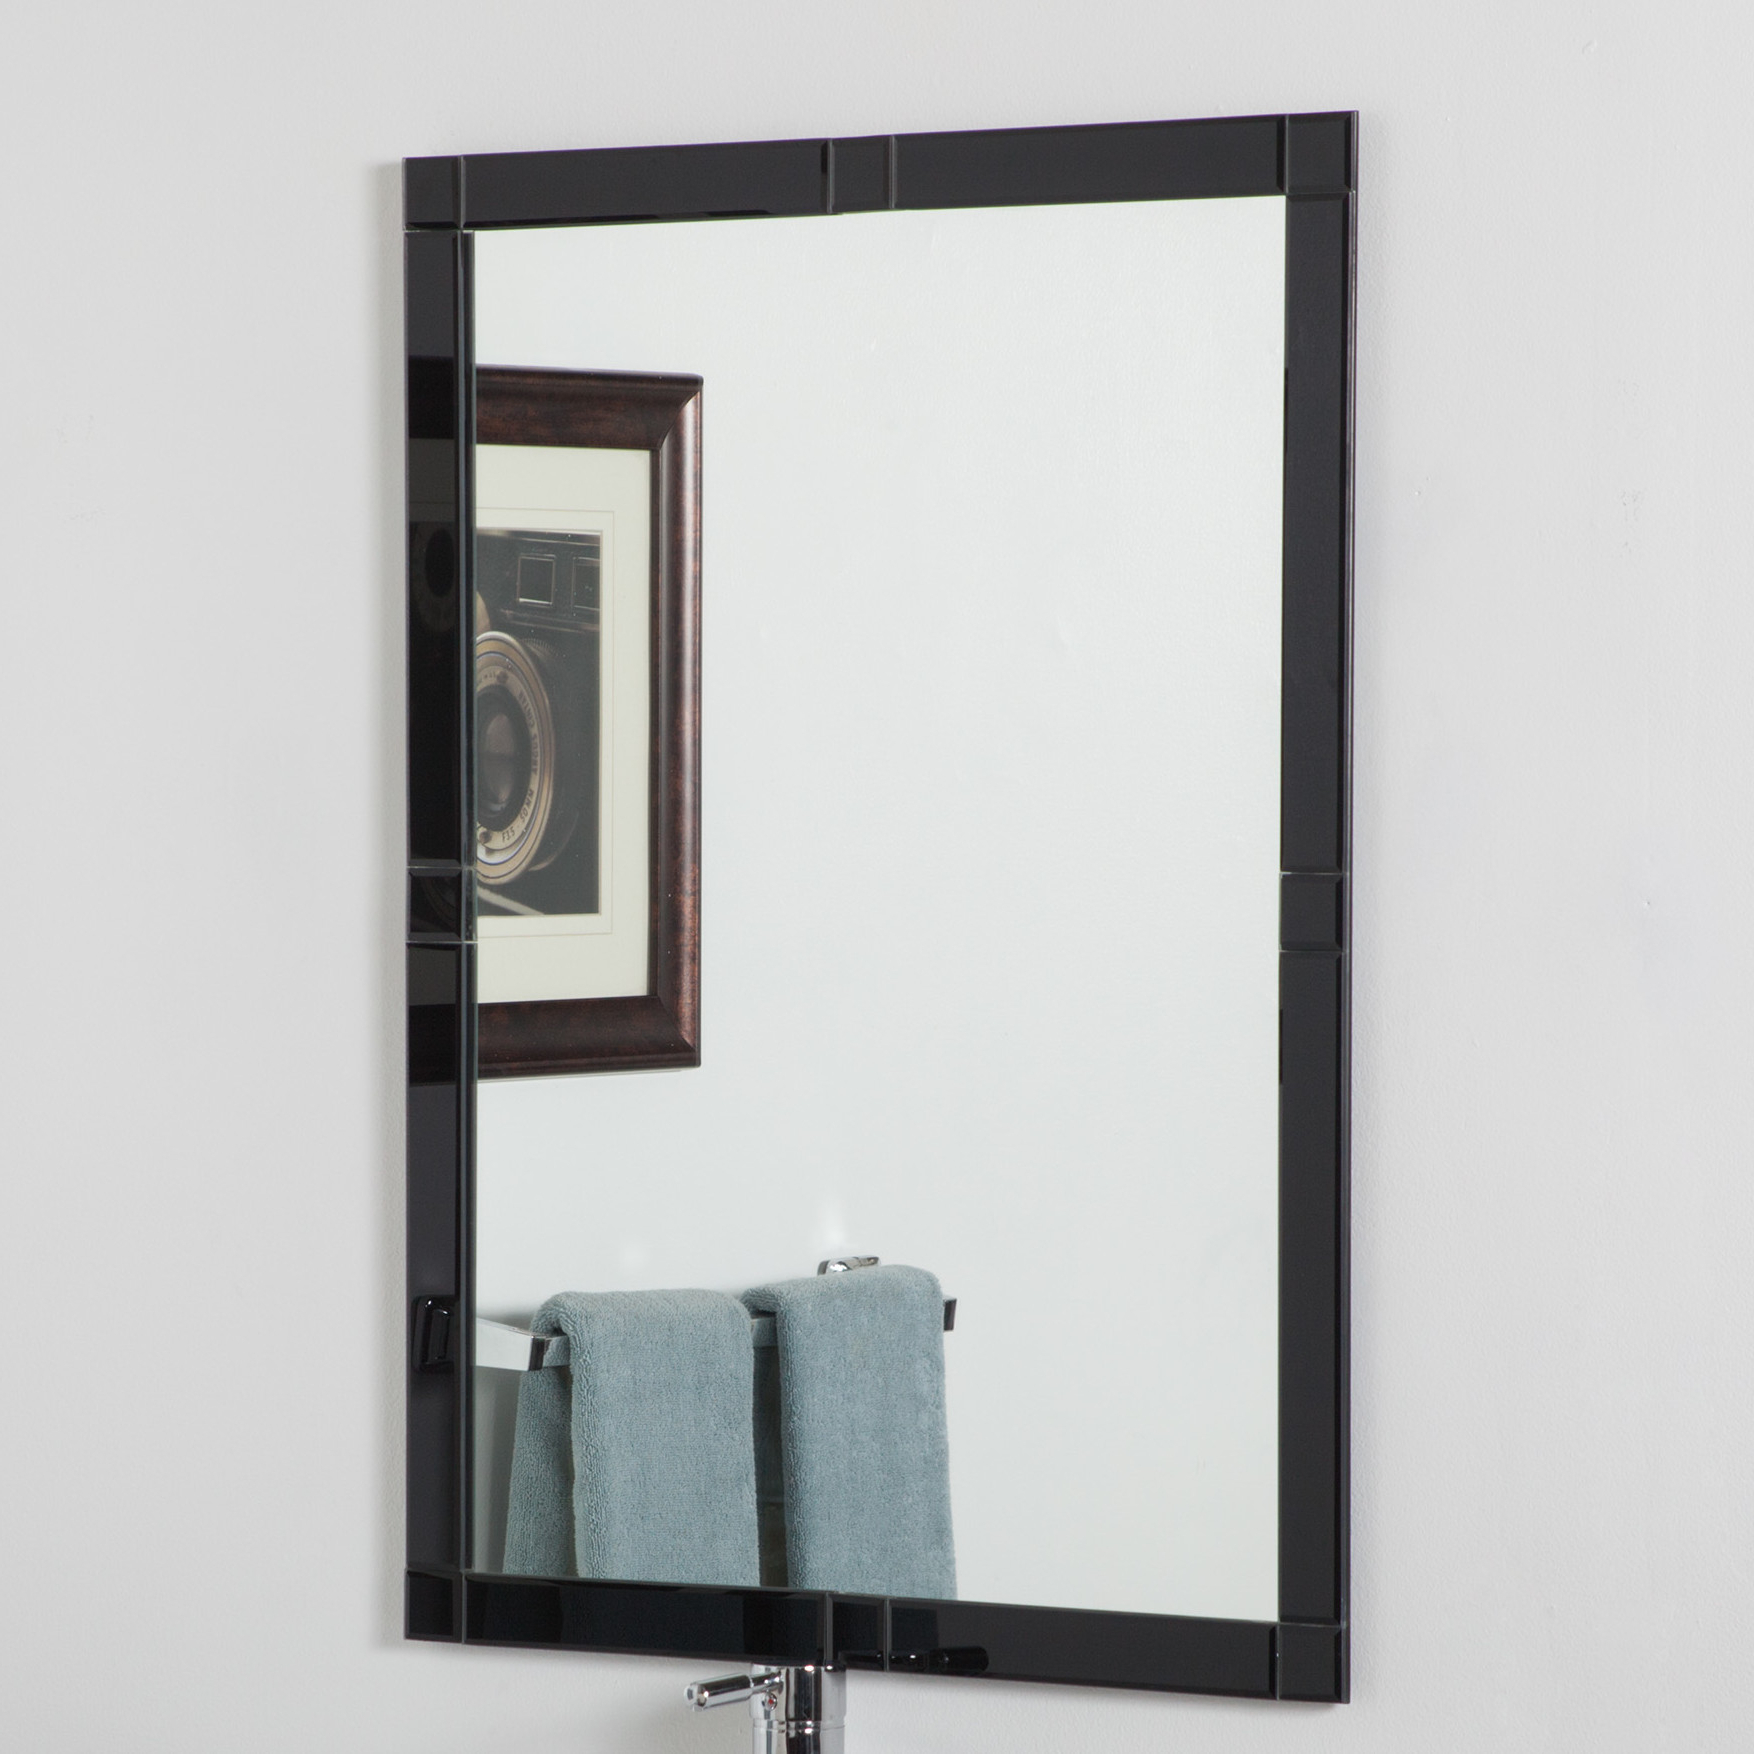 Current Details About Decor Wonderland Frameless Beveled Kinana Wall Mirror For Frameless Molten Wall Mirrors (View 14 of 20)